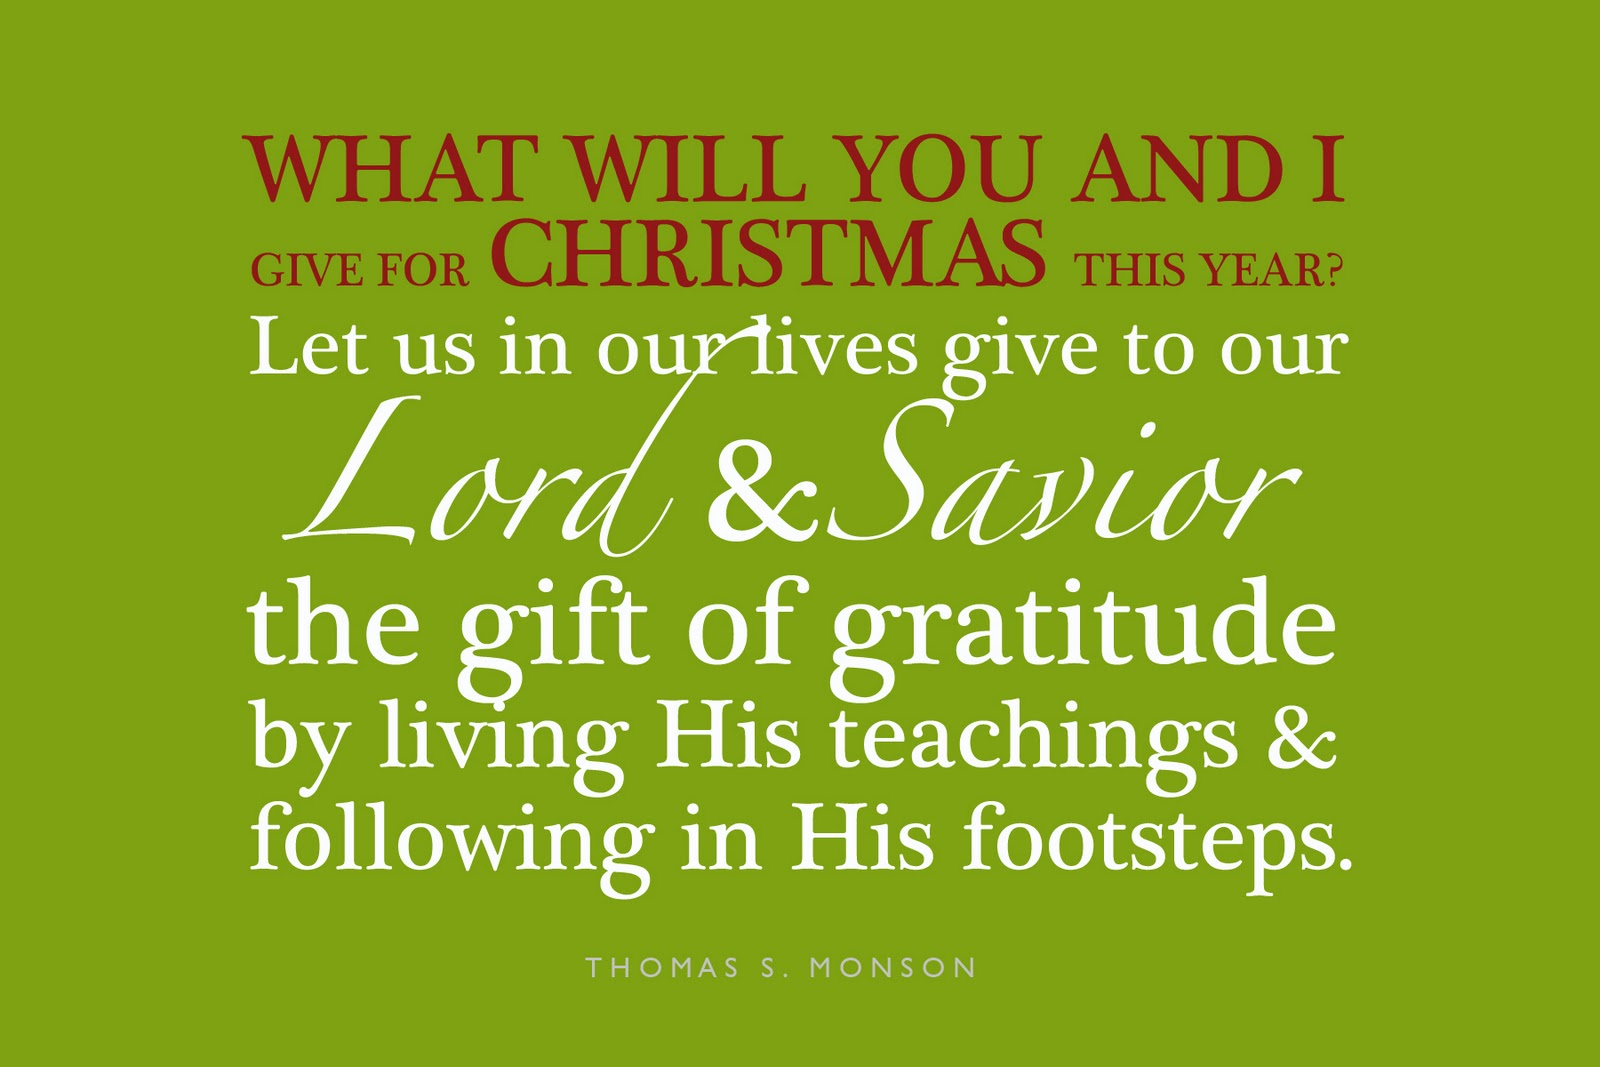 Quotes Of Jesus Christmas Quotes For Jesus Christ  Inspiring Quotes And Words In Life